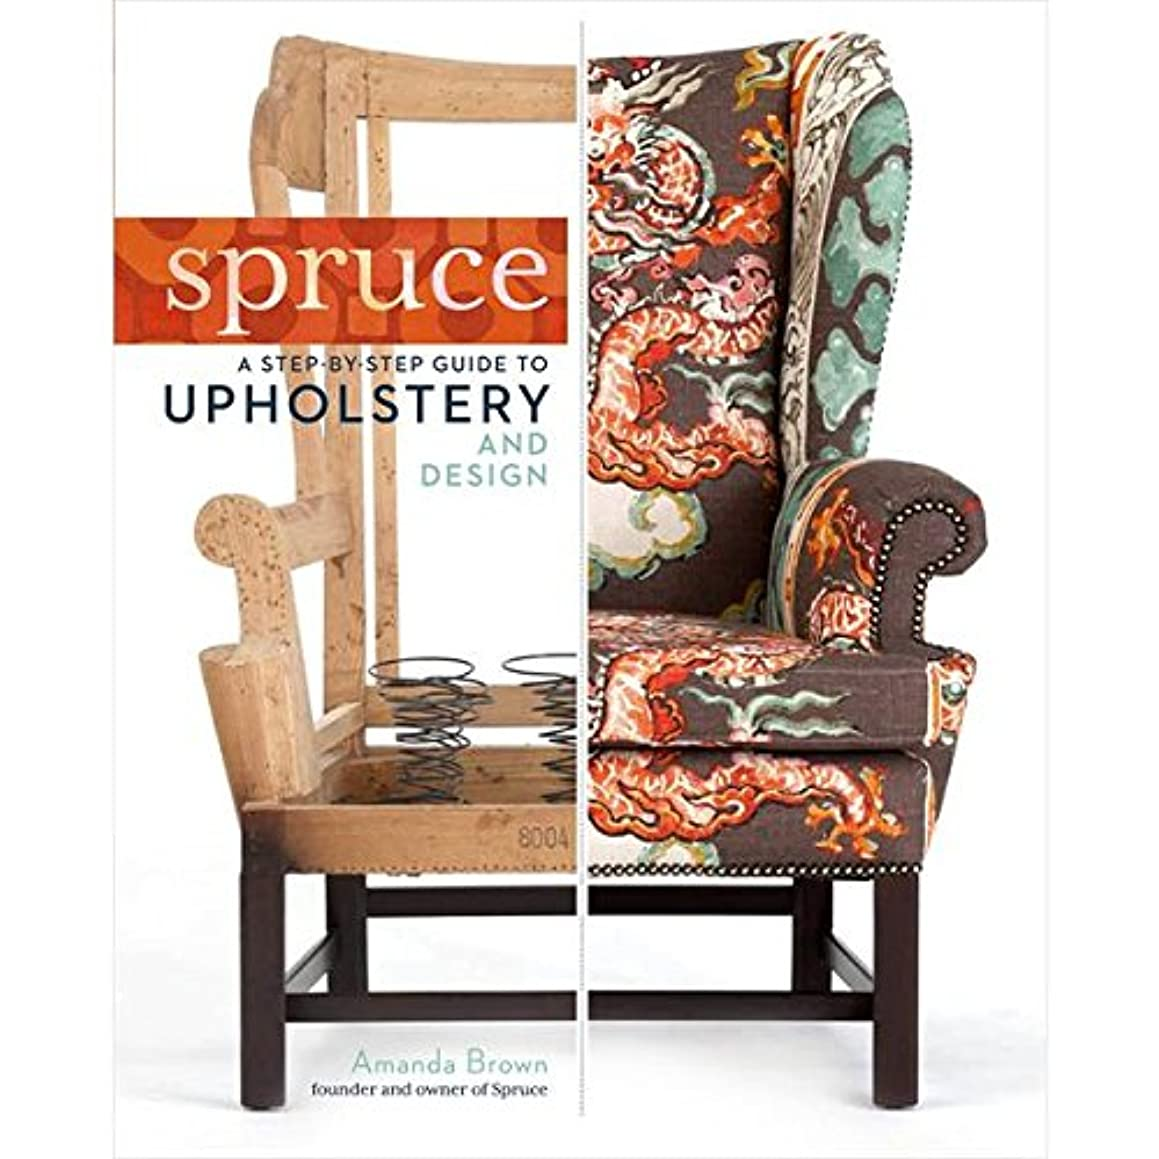 Spruce: A Step-by-Step Guide to Upholstery and Design bofqj83016